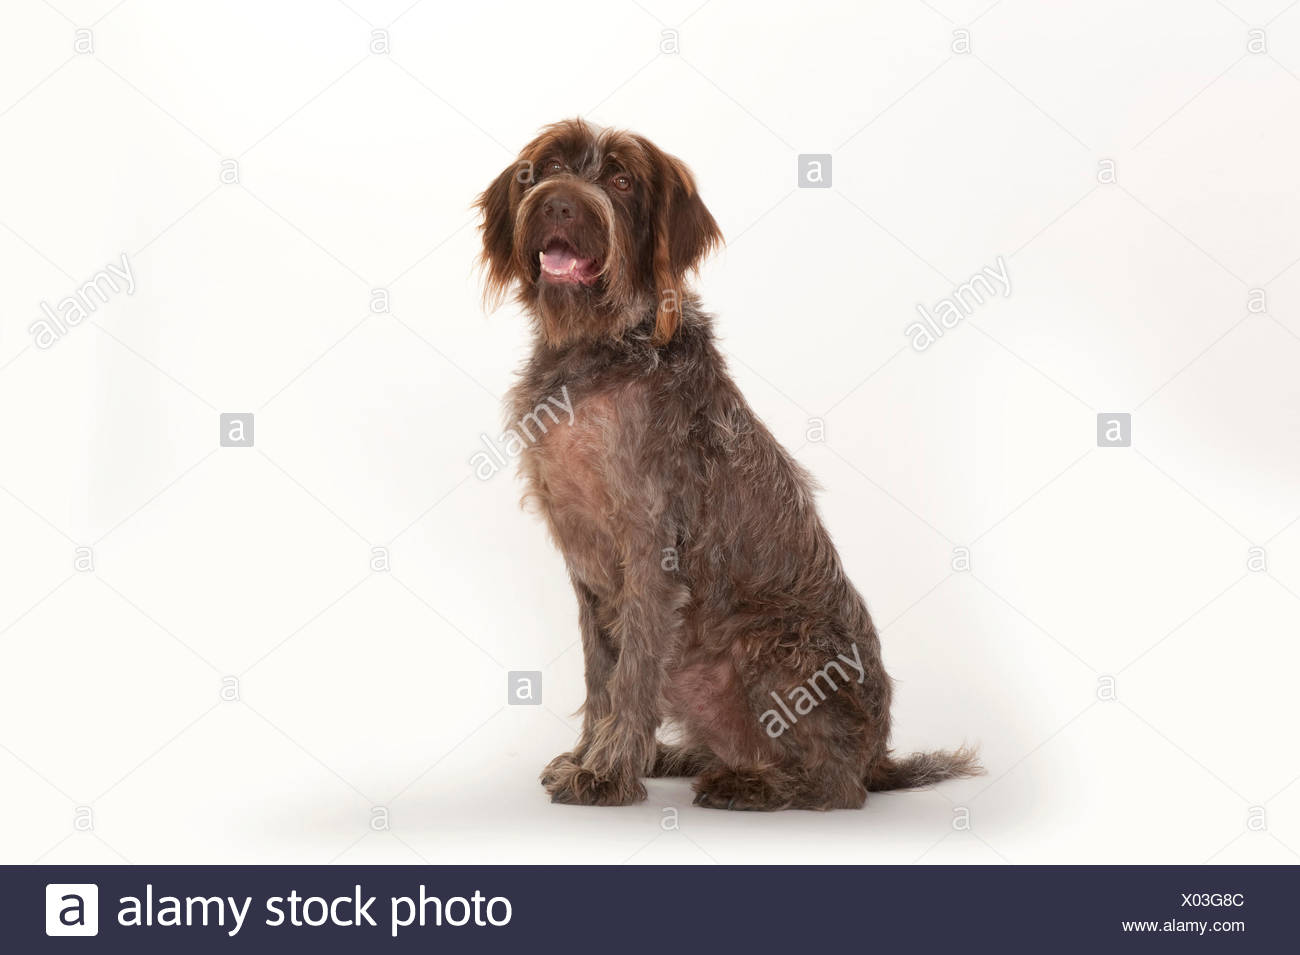 Wirehaired Pointing Griffon Stock Photos & Wirehaired Pointing ...